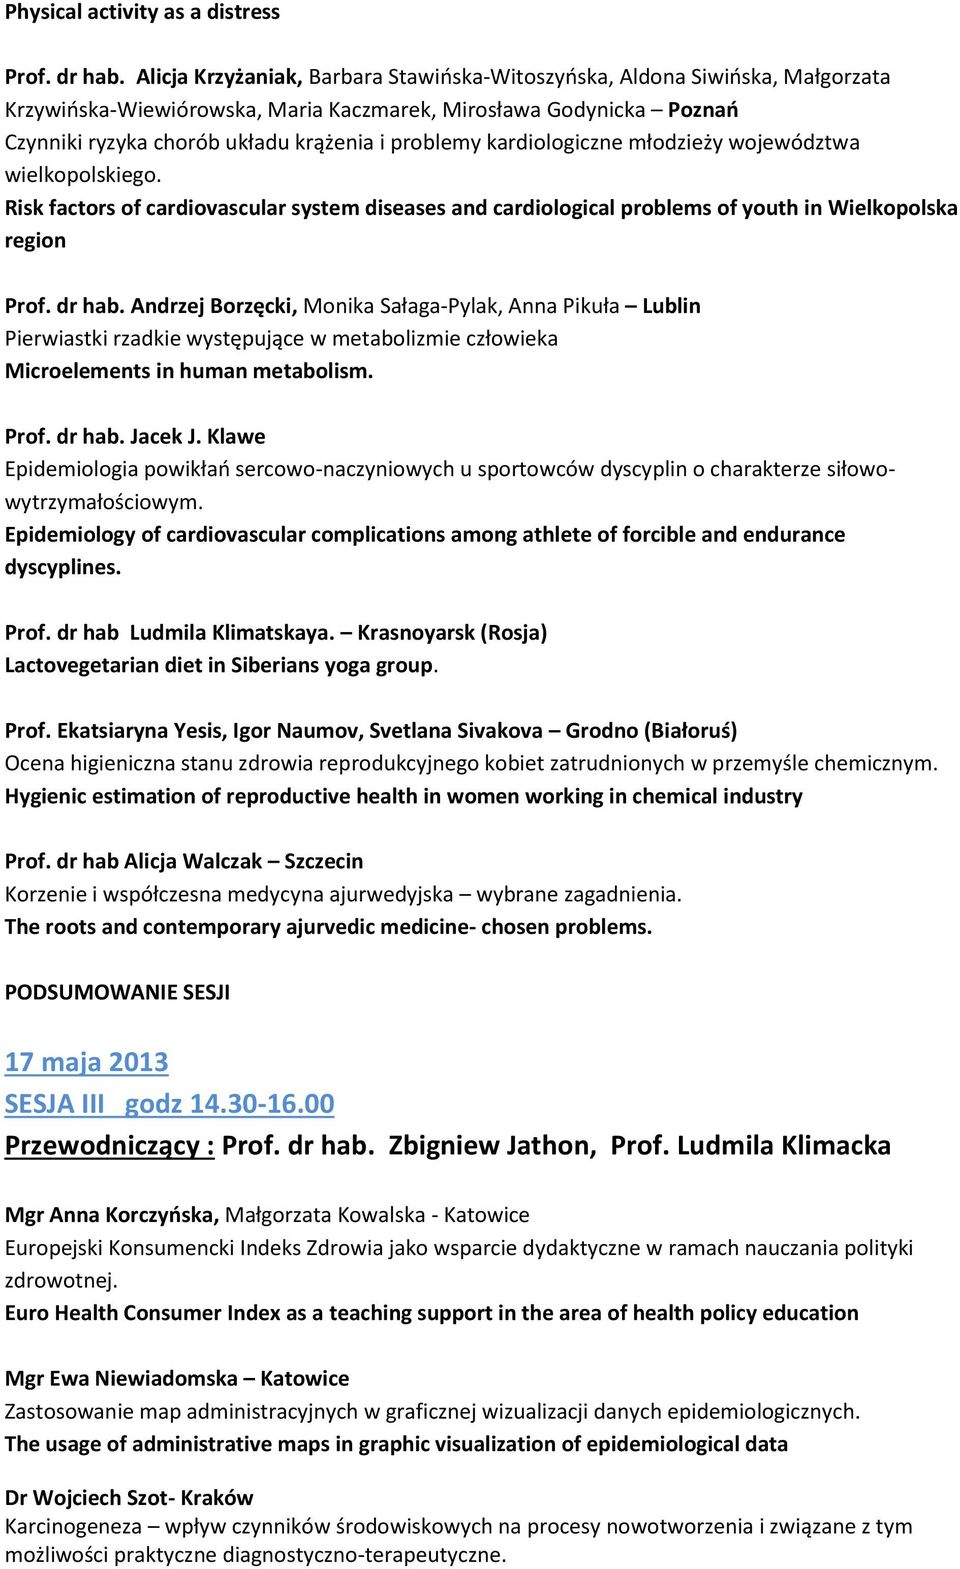 kardiologiczne młodzieży województwa wielkopolskiego. Risk factors of cardiovascular system diseases and cardiological problems of youth in Wielkopolska region Prof. dr hab.